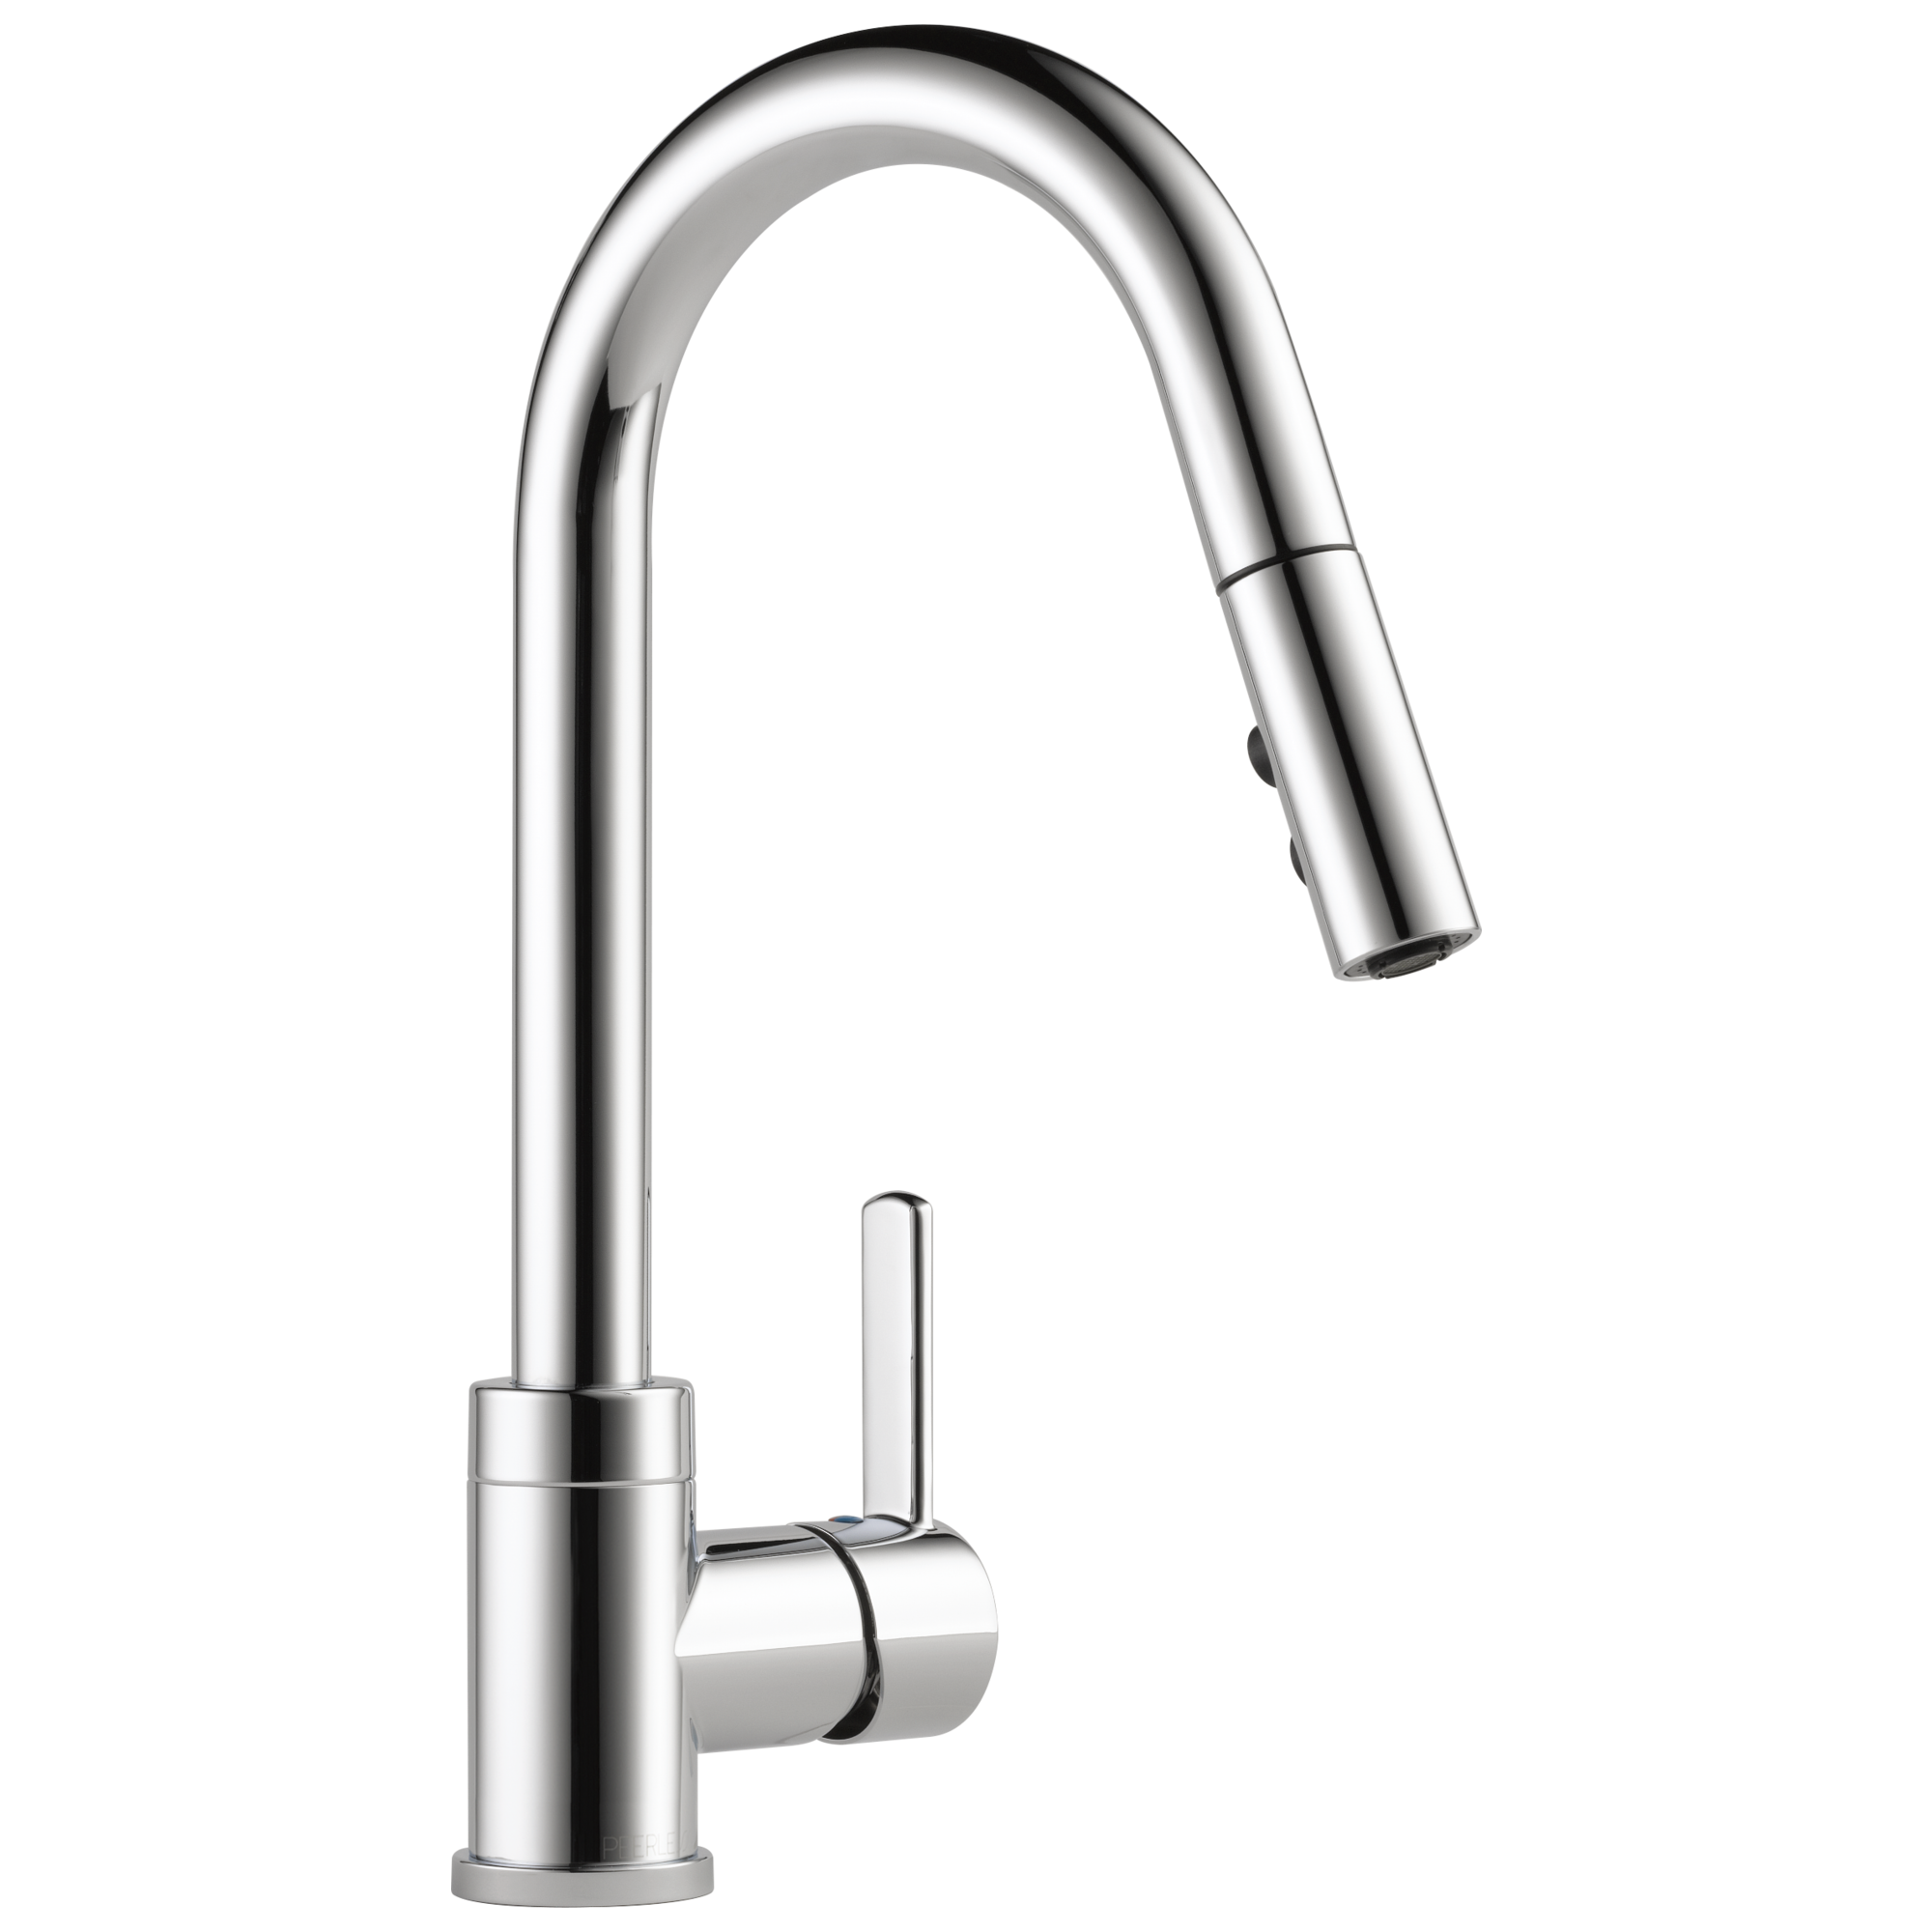 Single Handle Pull Down Kitchen Faucet. Peerless Faucet